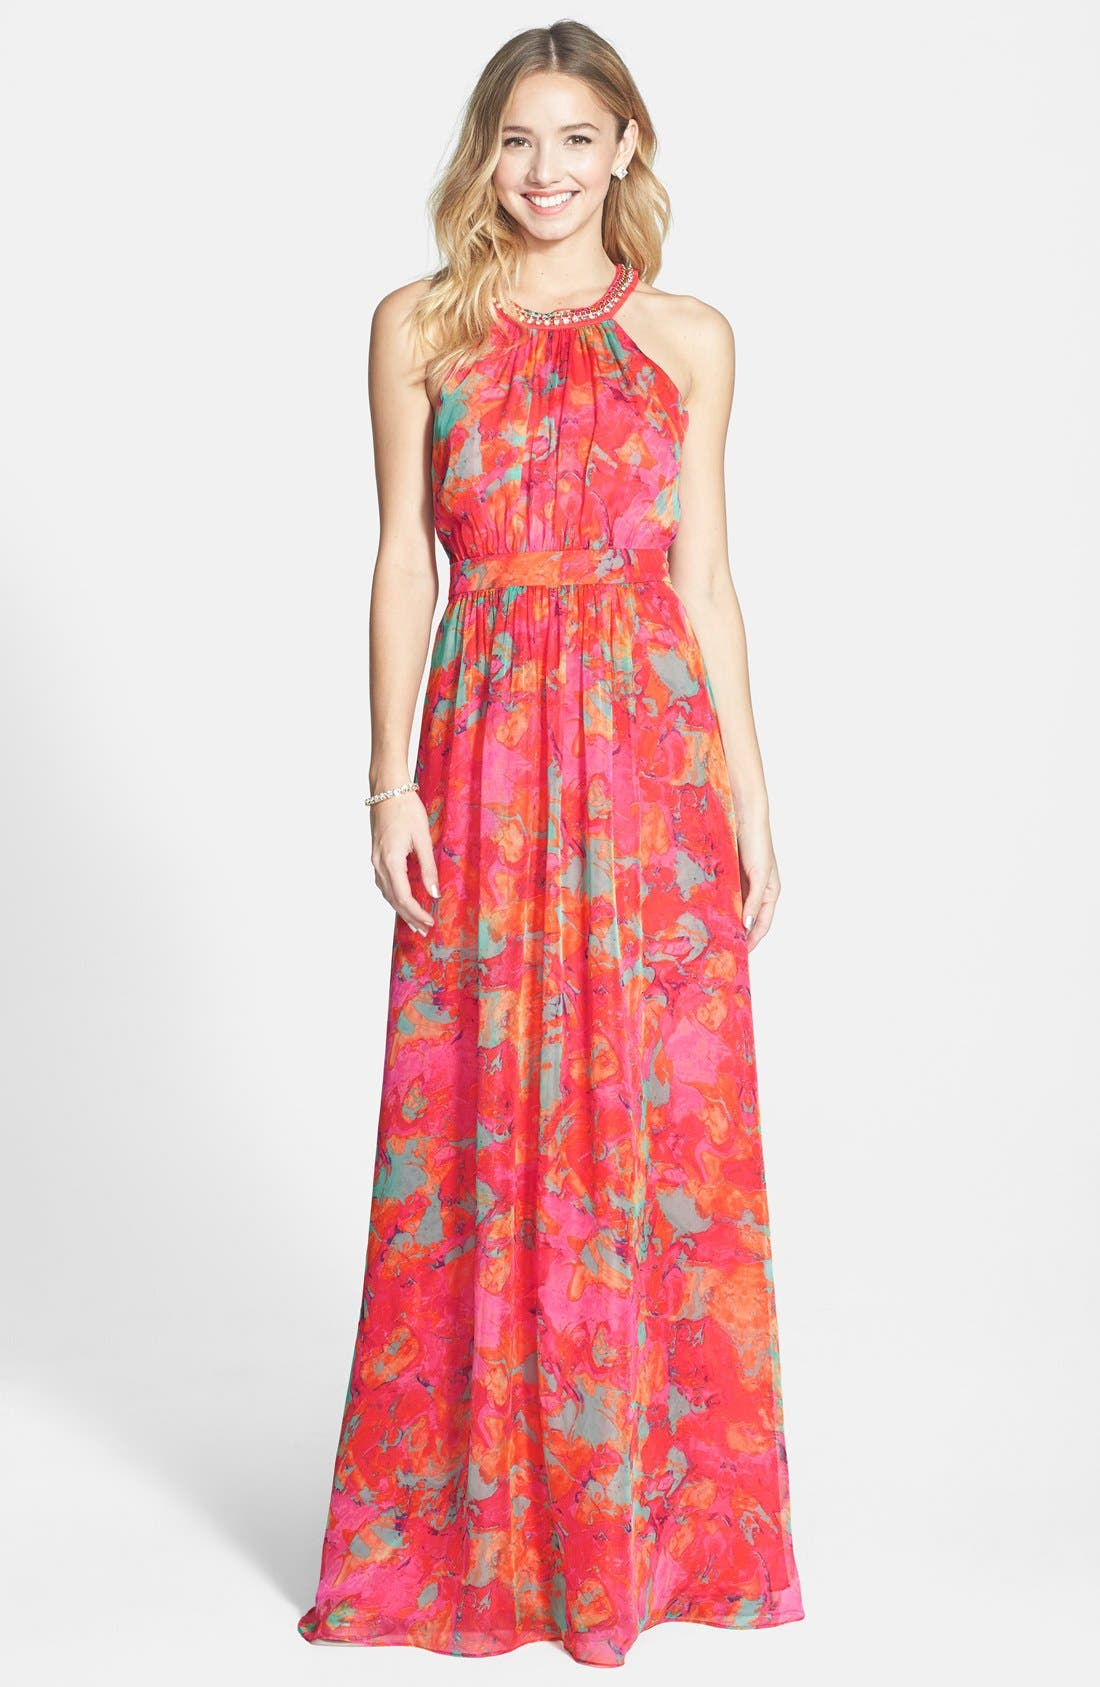 LAUNDRY BY SHELLI SEGAL Embellished Print Chiffon Gown, Main, color, 600